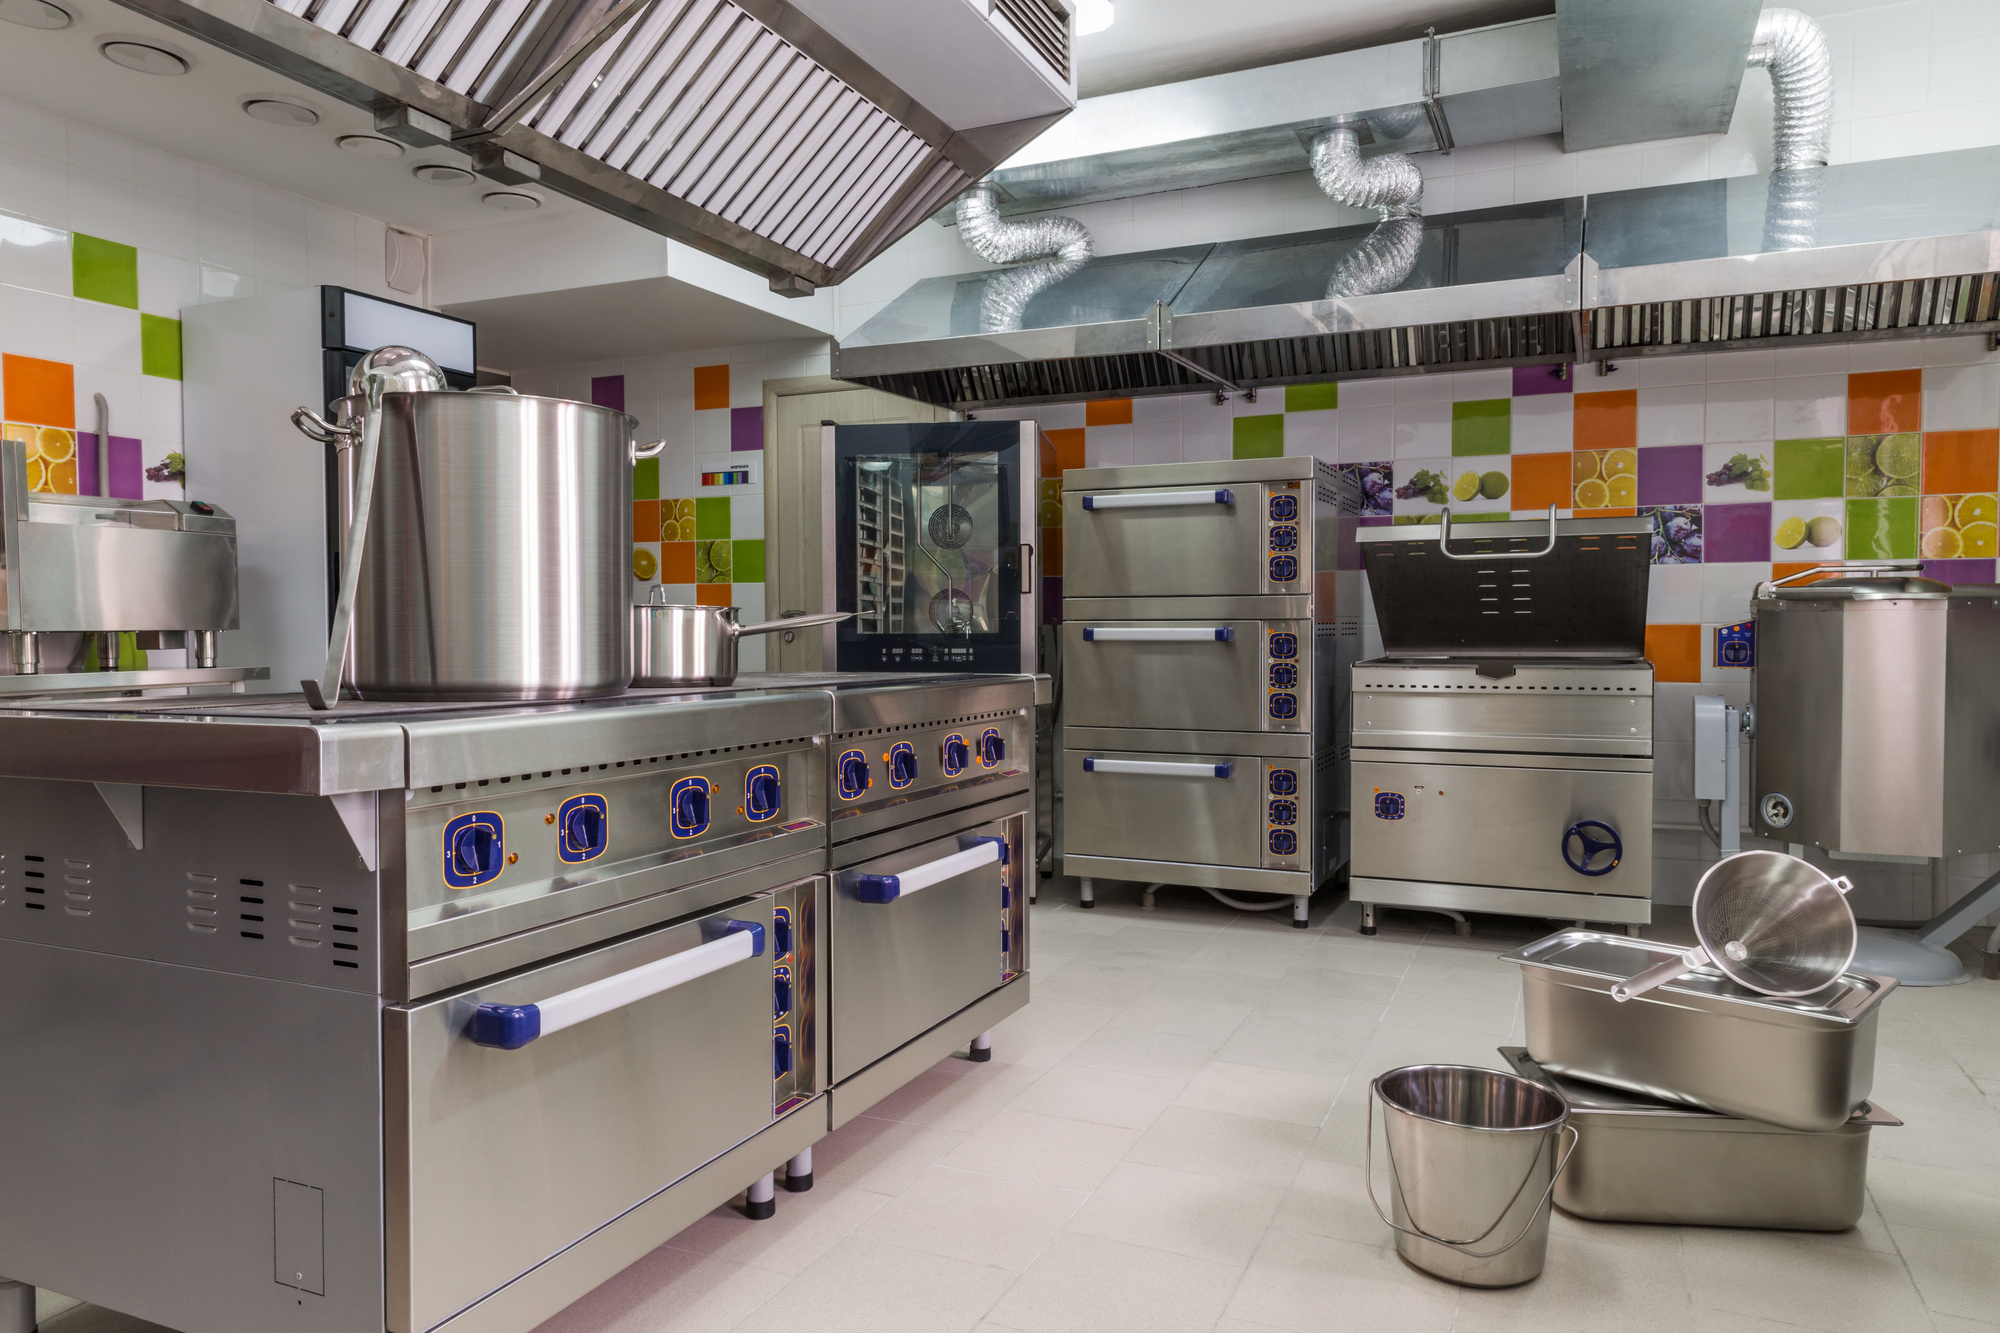 How to Design a Great Kitchen Ventilation System